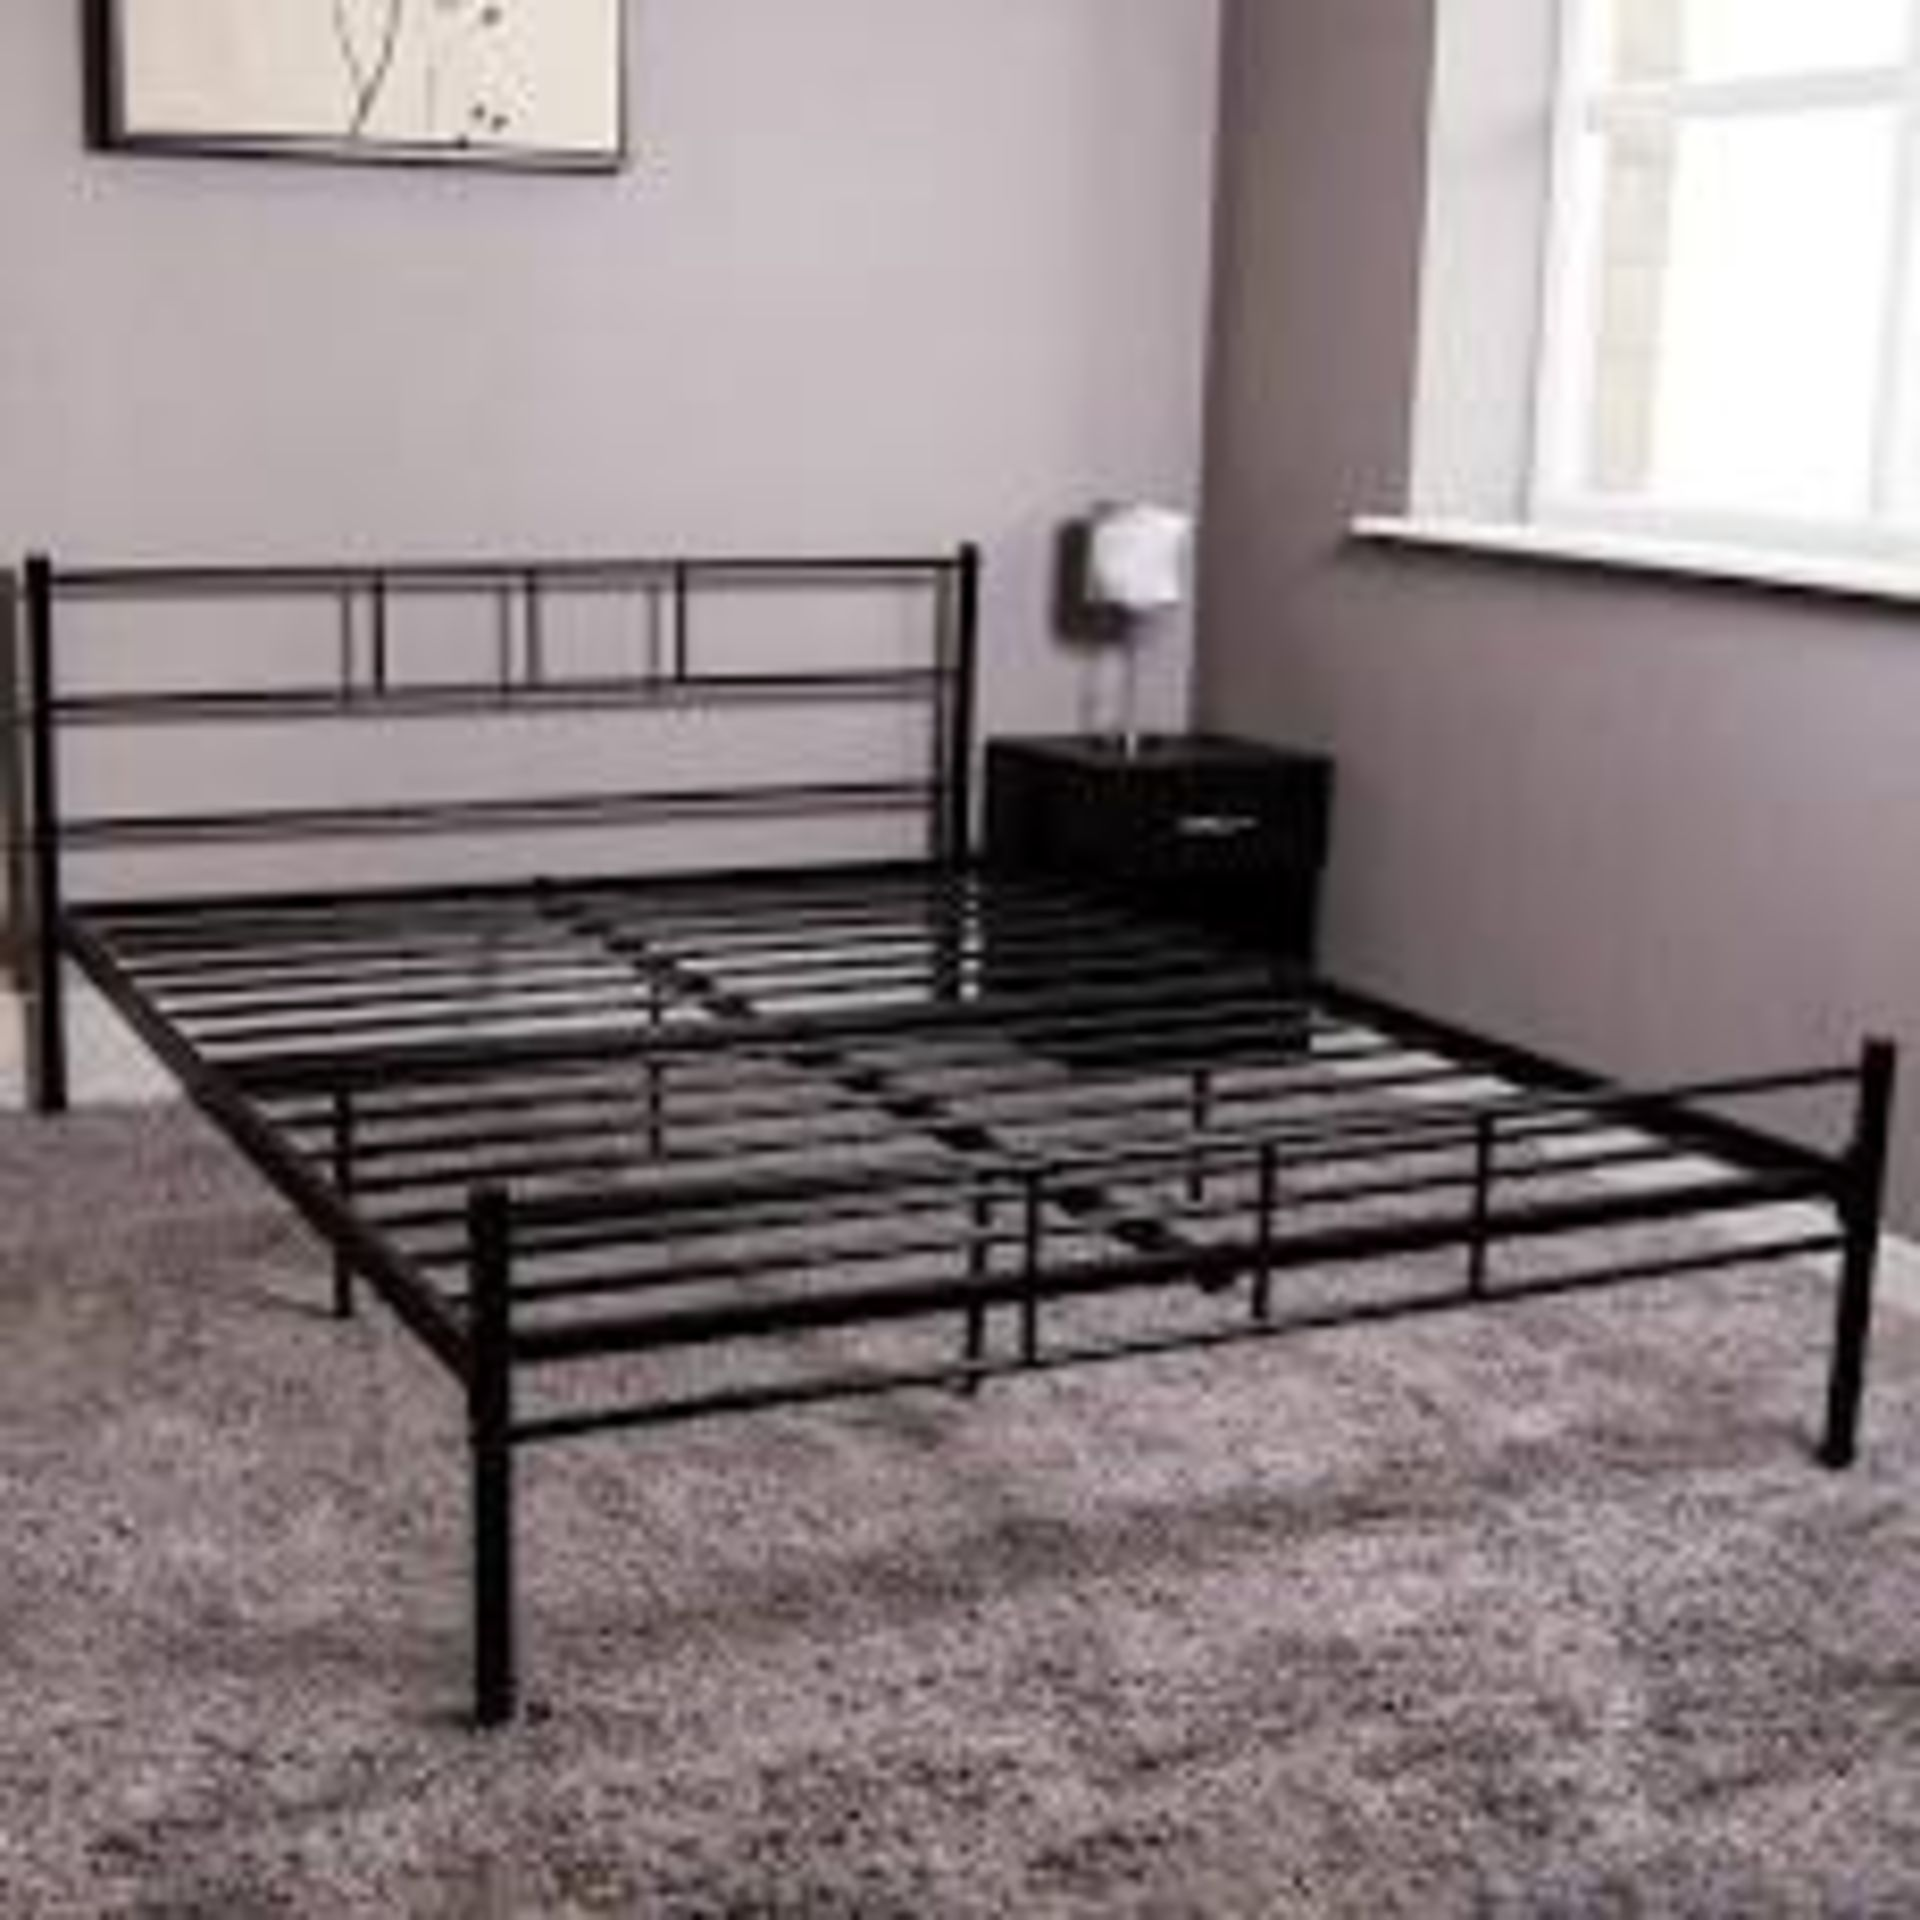 Lot 6 - Boxed Double Metal Bed In Black Powder Coating RRP £100 (18364) IMAGES ARE FOR ILLUSTRATION PURPOSES